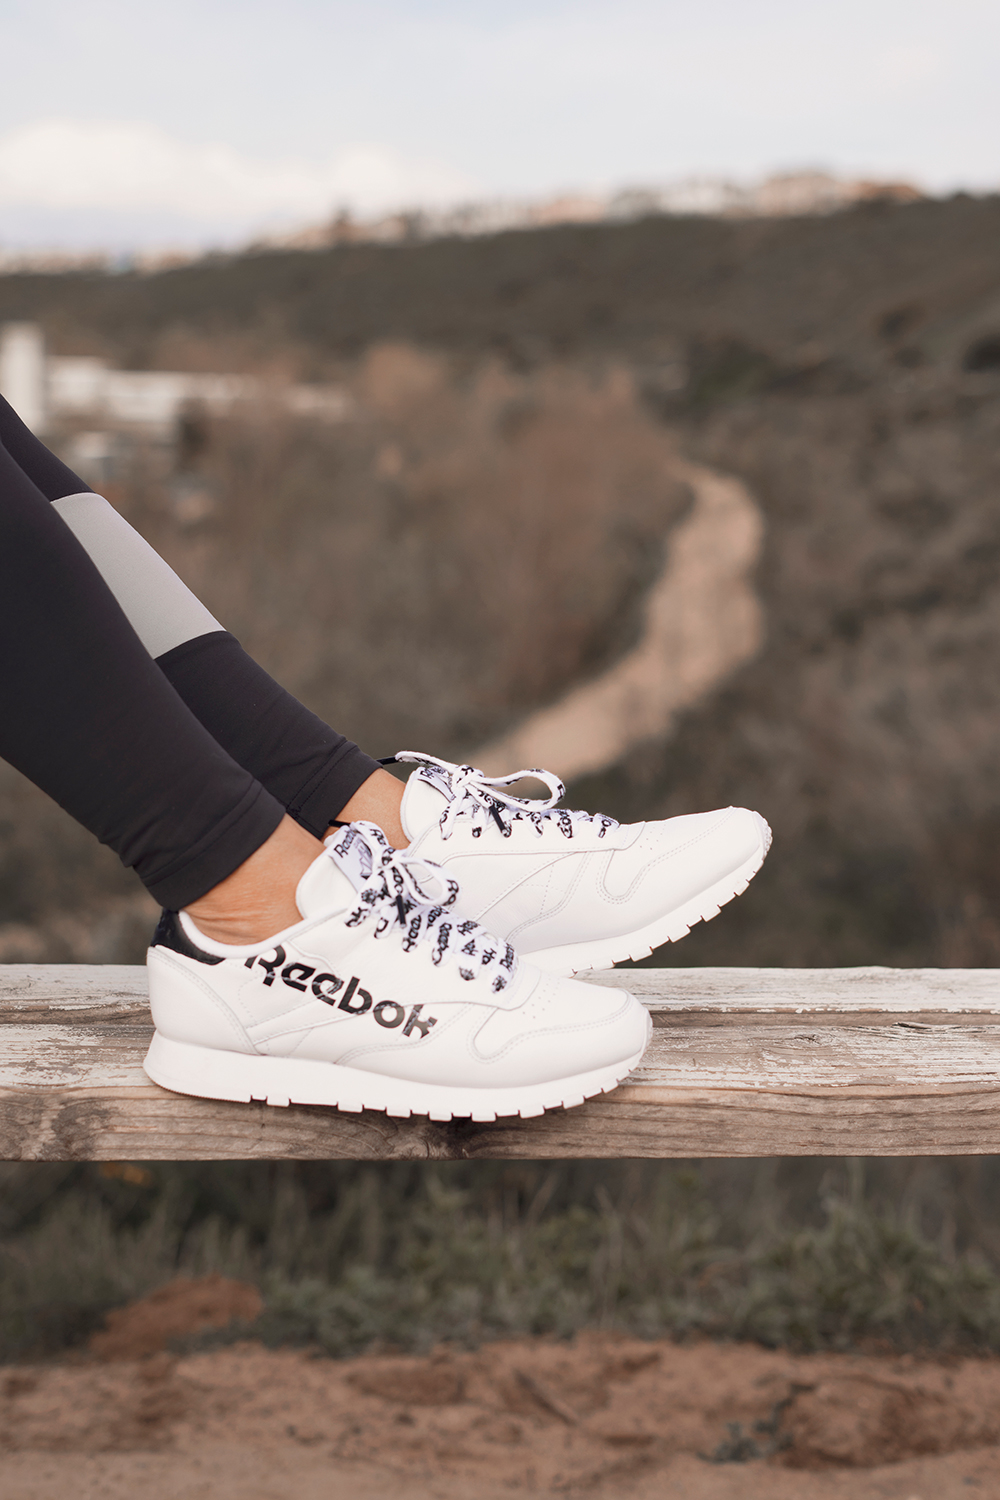 05reebok-sneakers-shoes-activewear-fitness